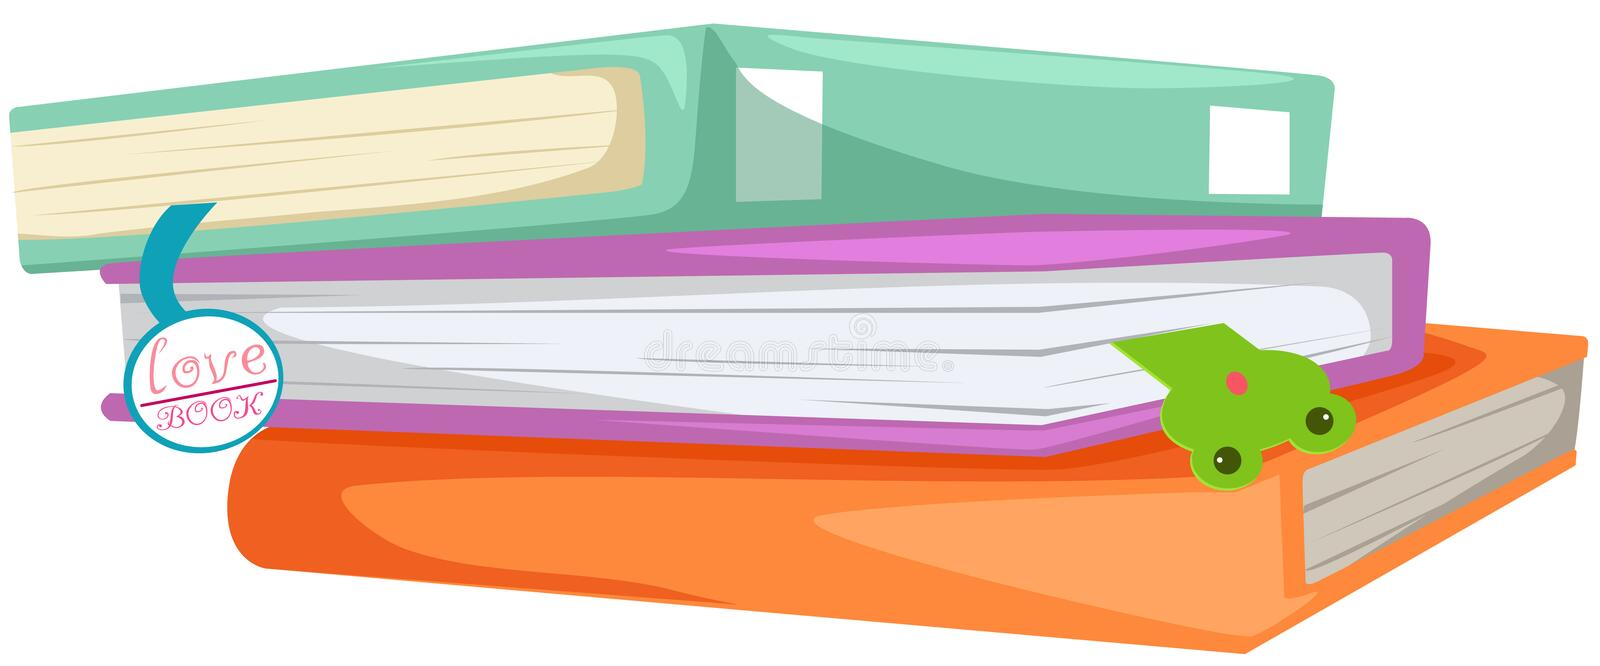 Stack of books royalty free illustration